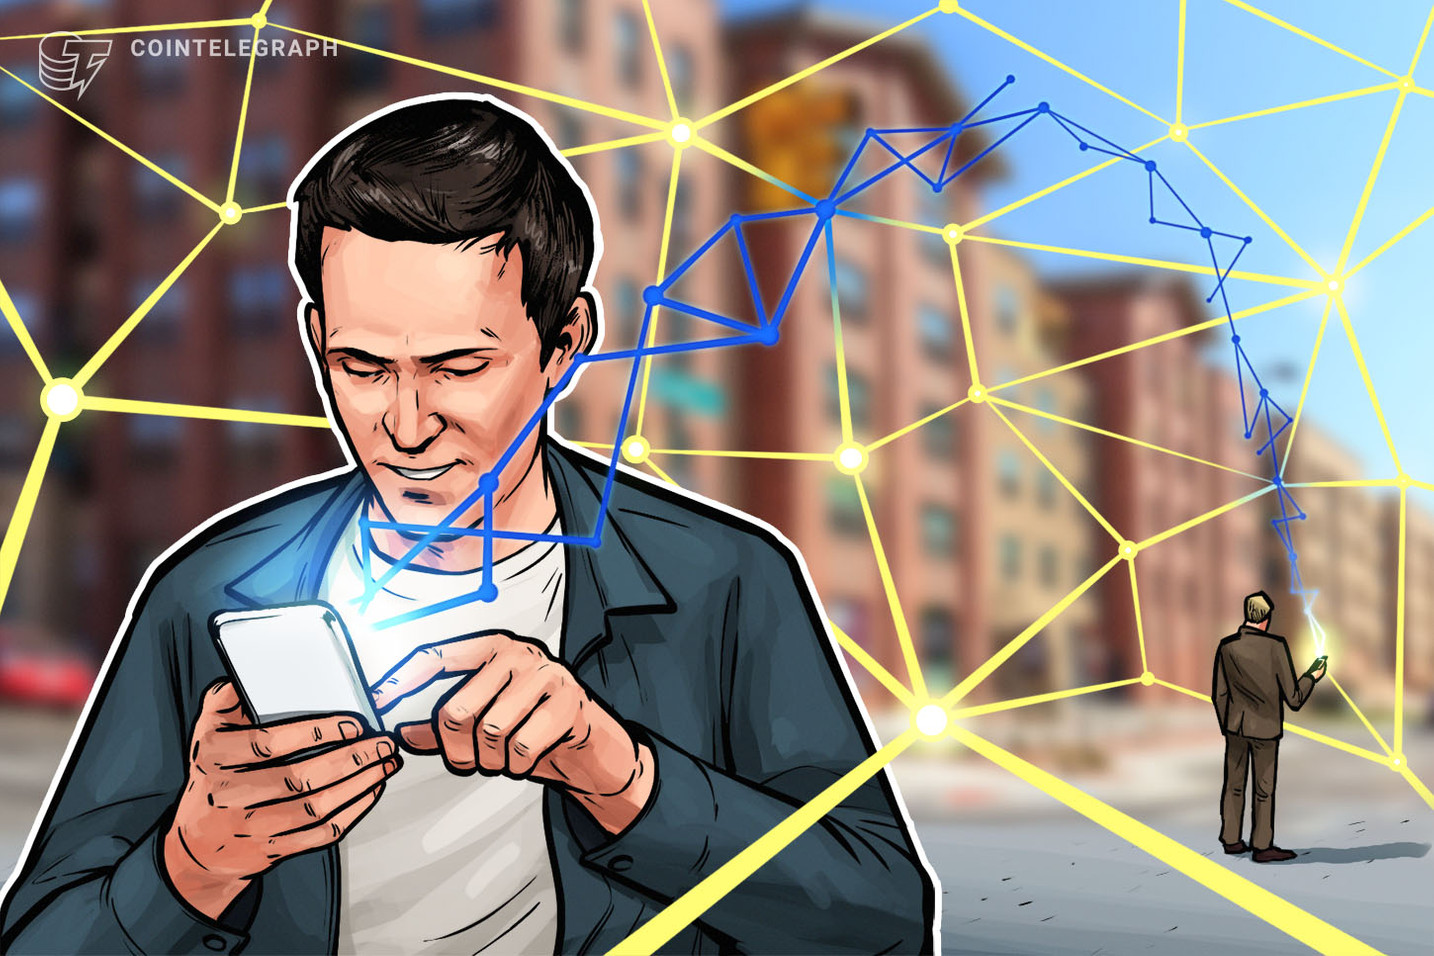 Telecom Giant Telefonica Pilots Blockchain Access on 8,000 Spanish Firms